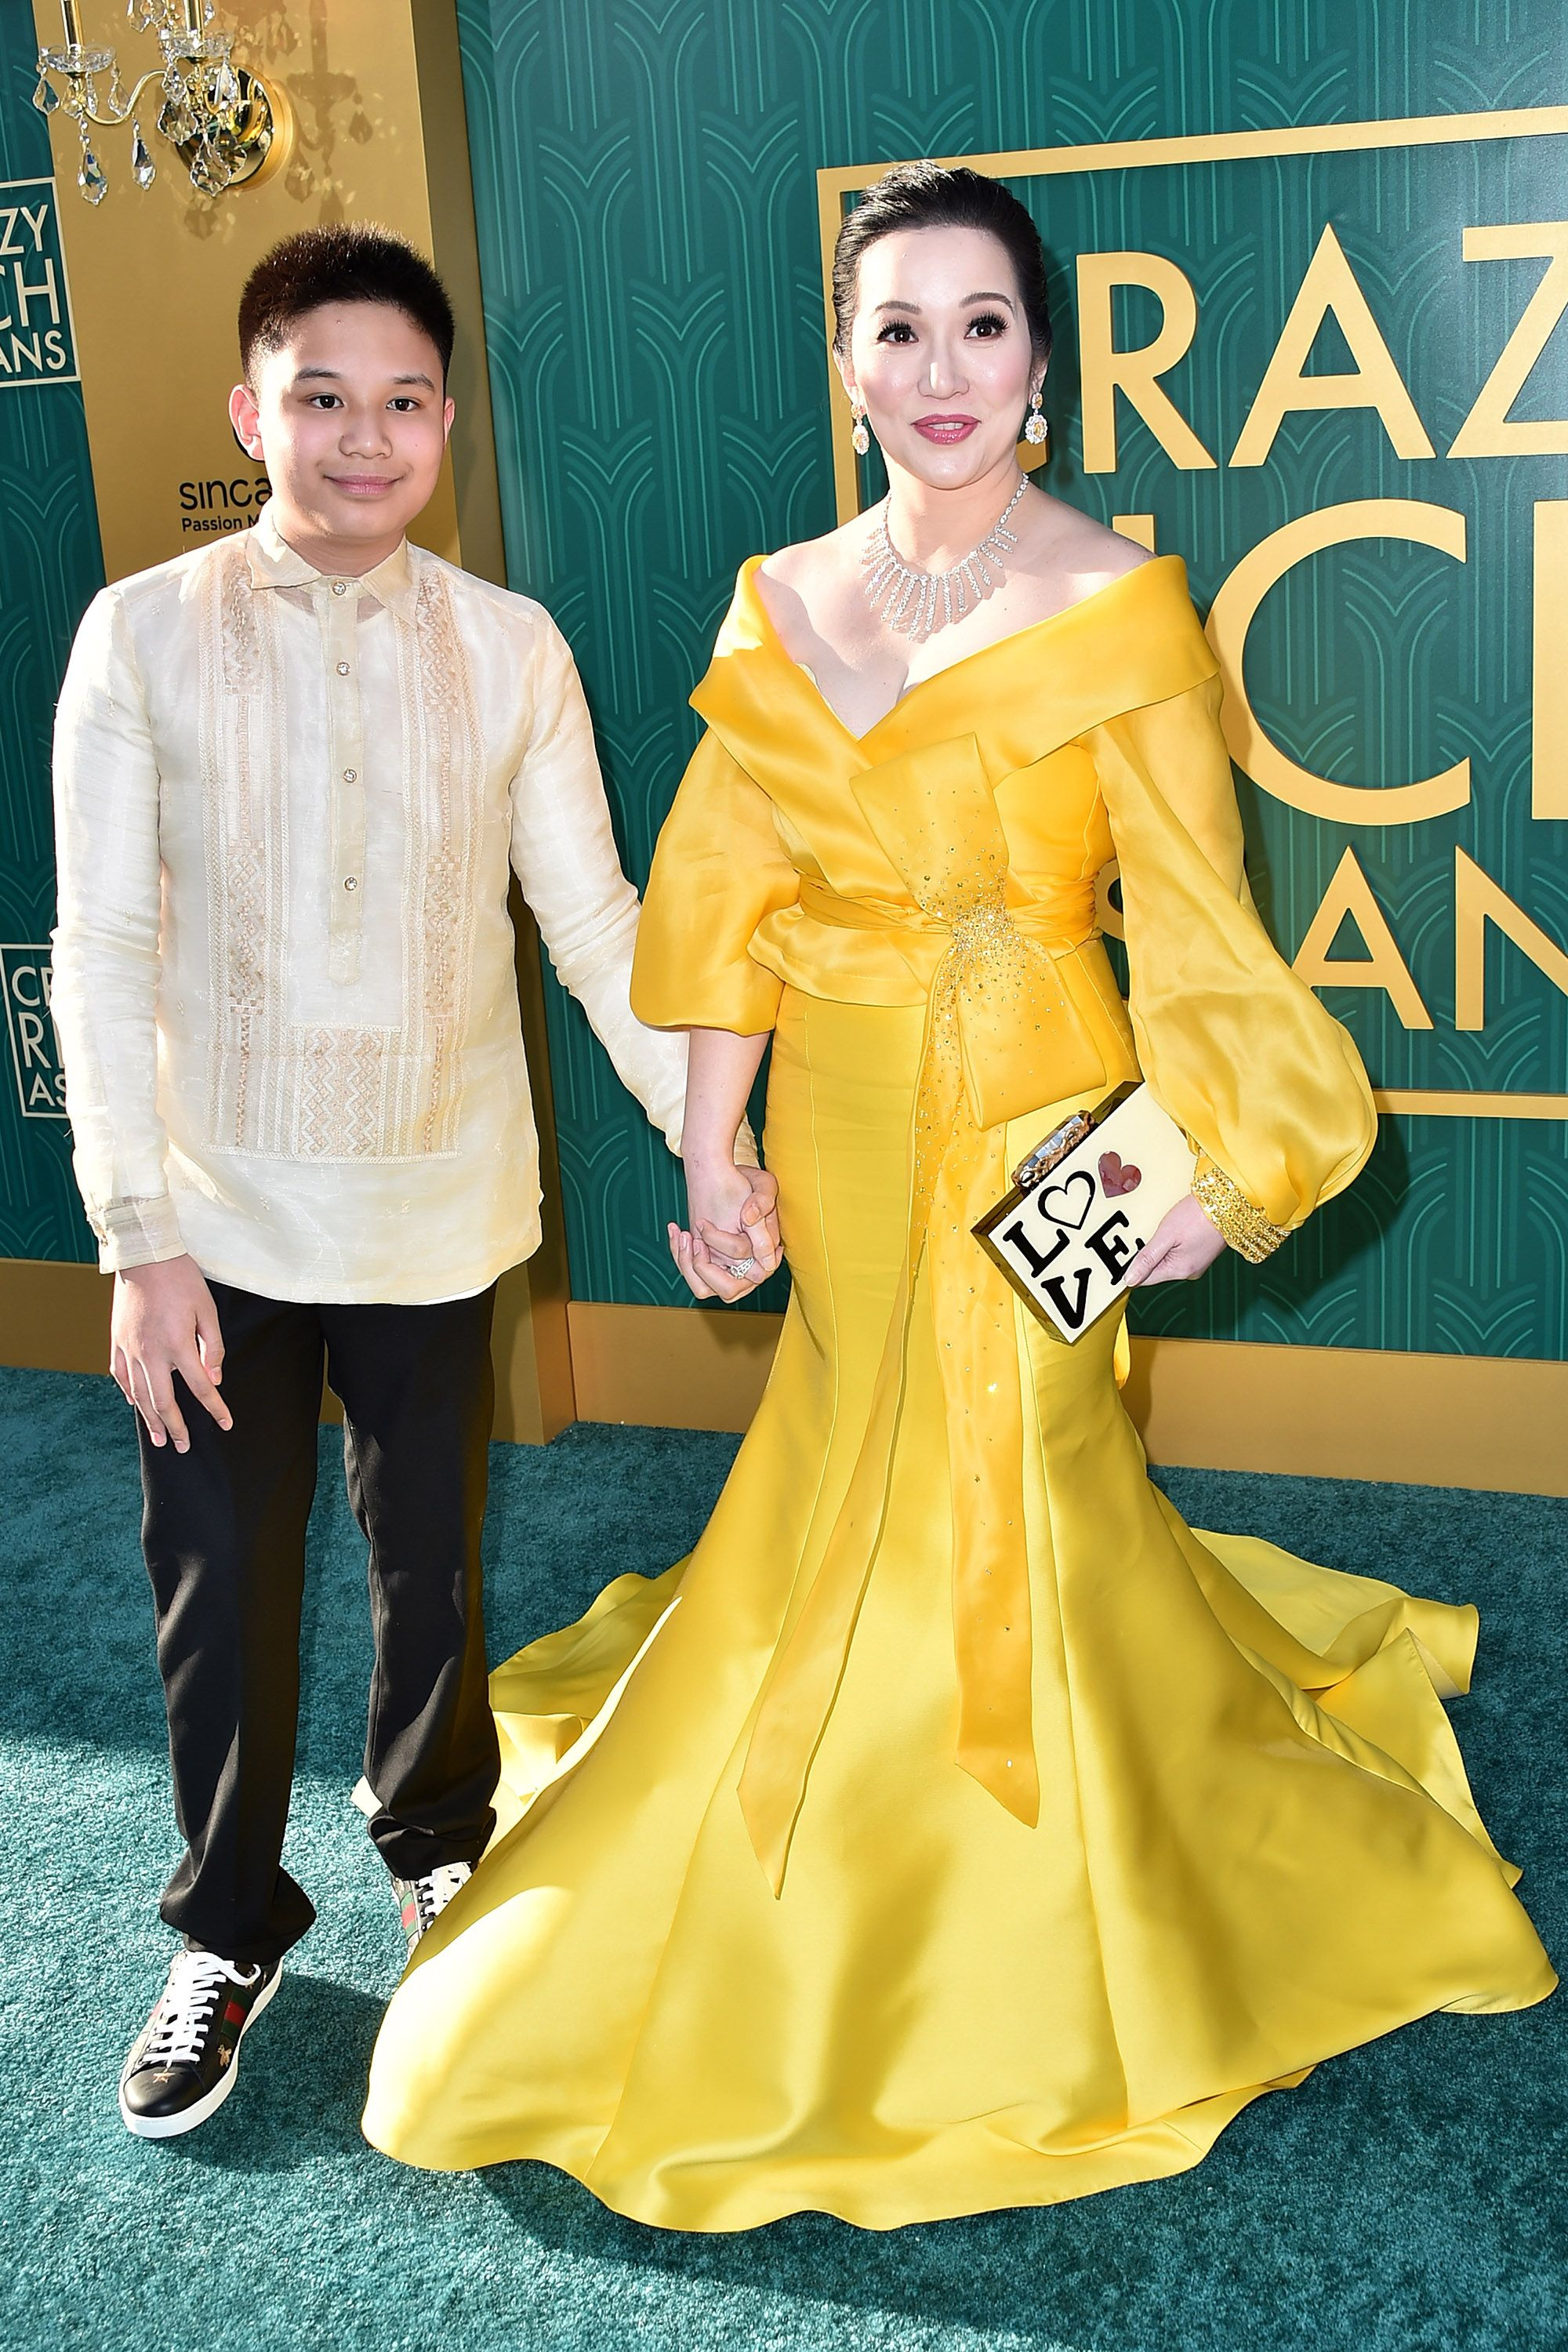 The Crazy Rich Asians Premiere Was Full Of Amazing Red Carpet Fashion